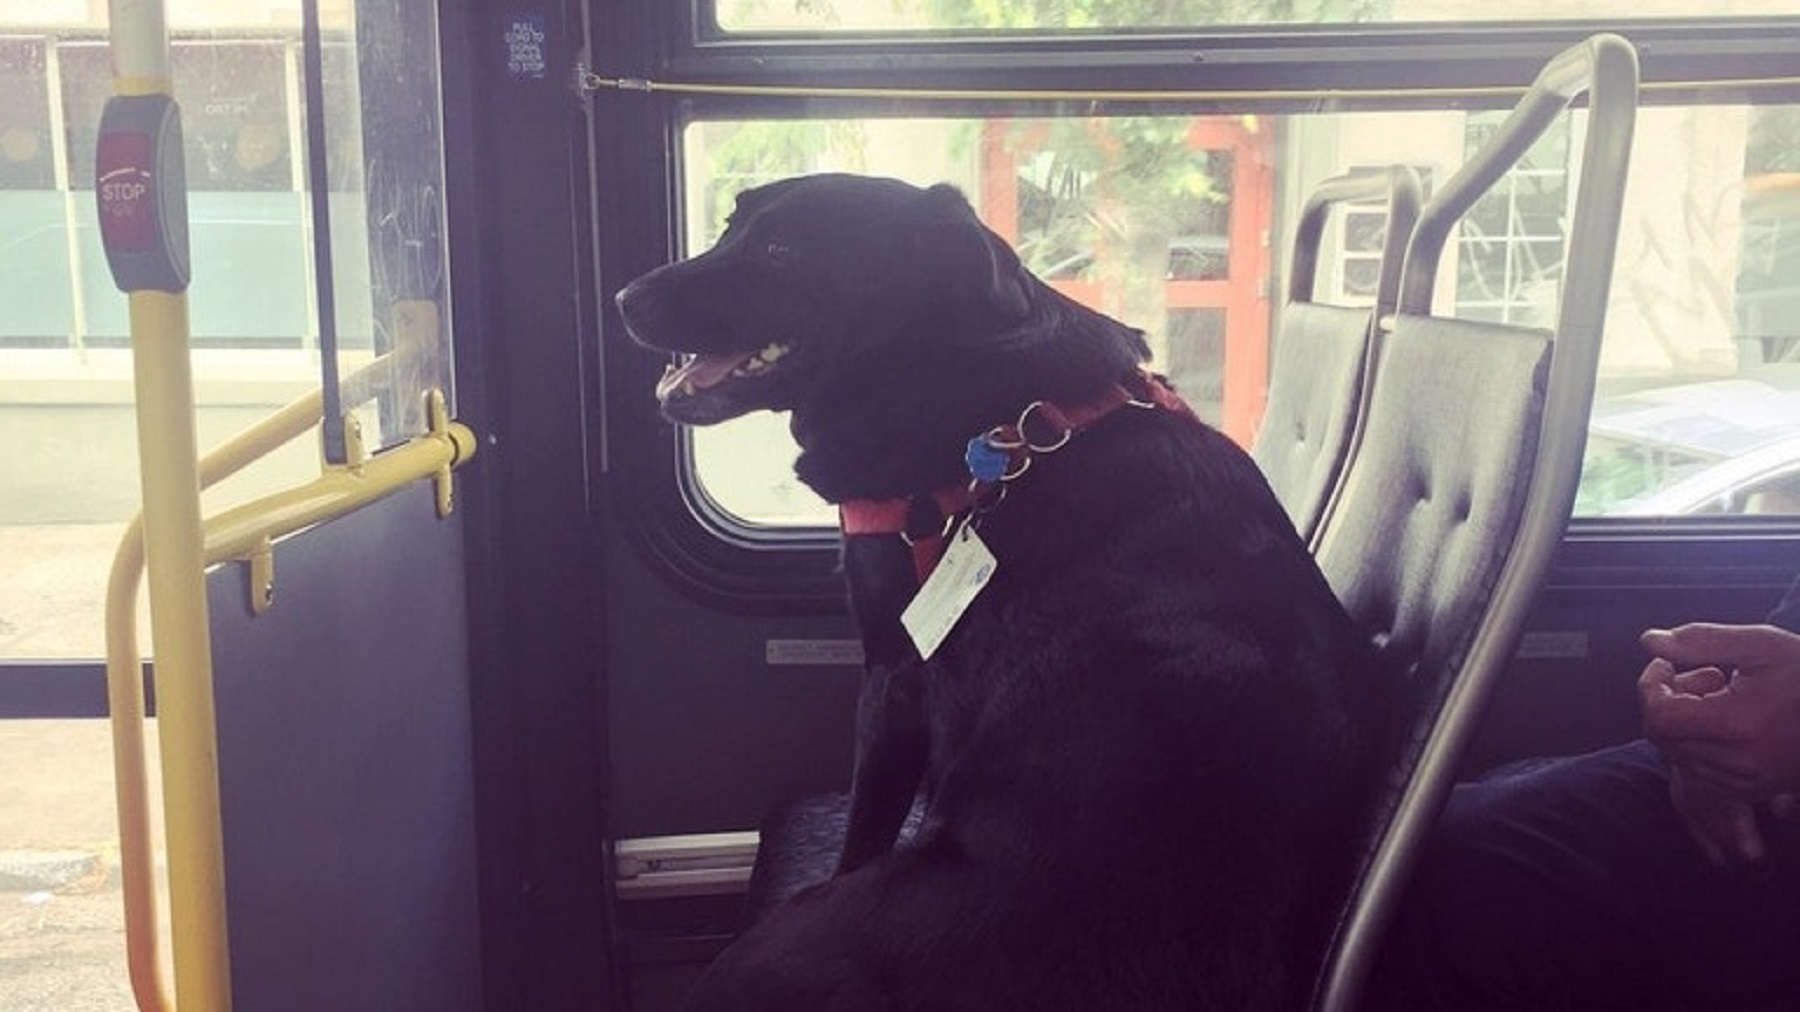 Eclipse the dog sits on a bus